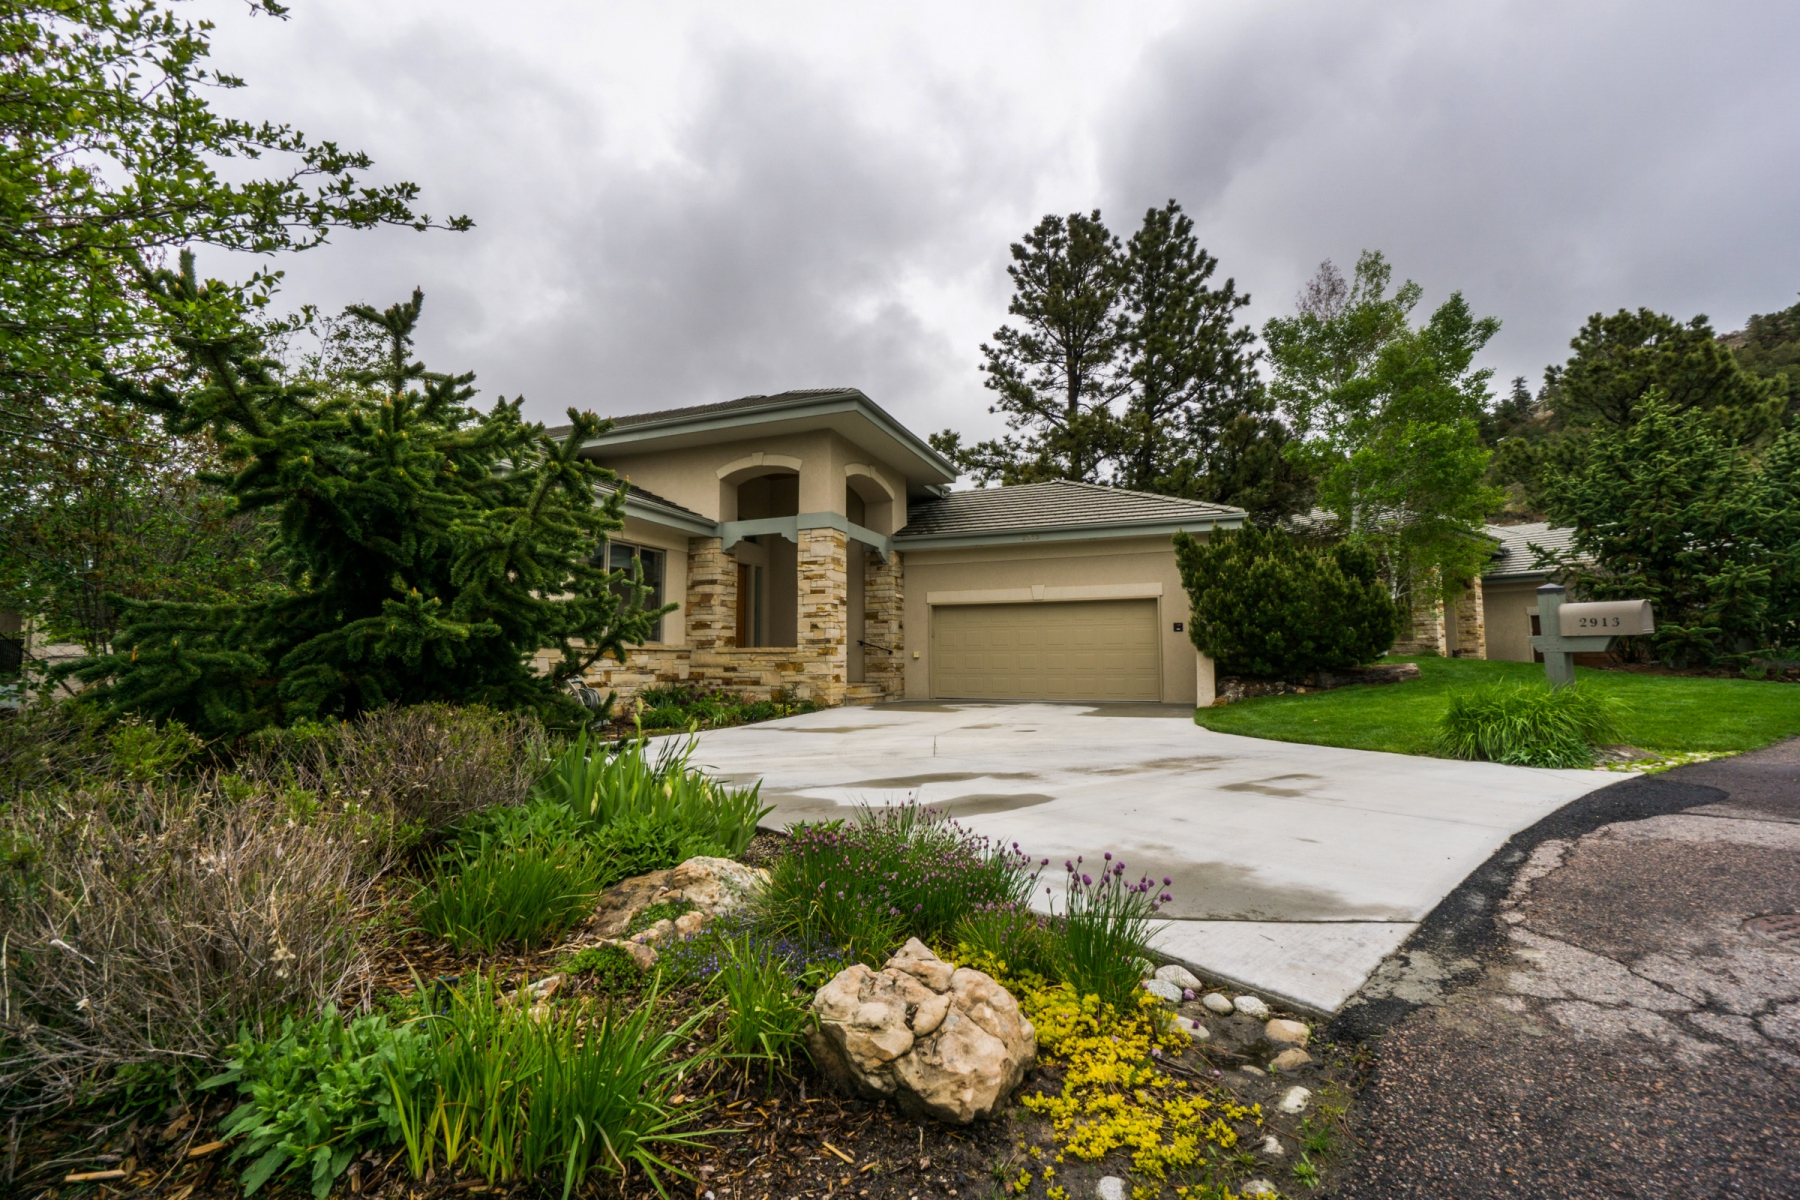 Single Family Home for Sale at 2913 Fairway View Ct 2913 Fairway View Ct. Castle Pines Village, Castle Rock, Colorado 80108 United States